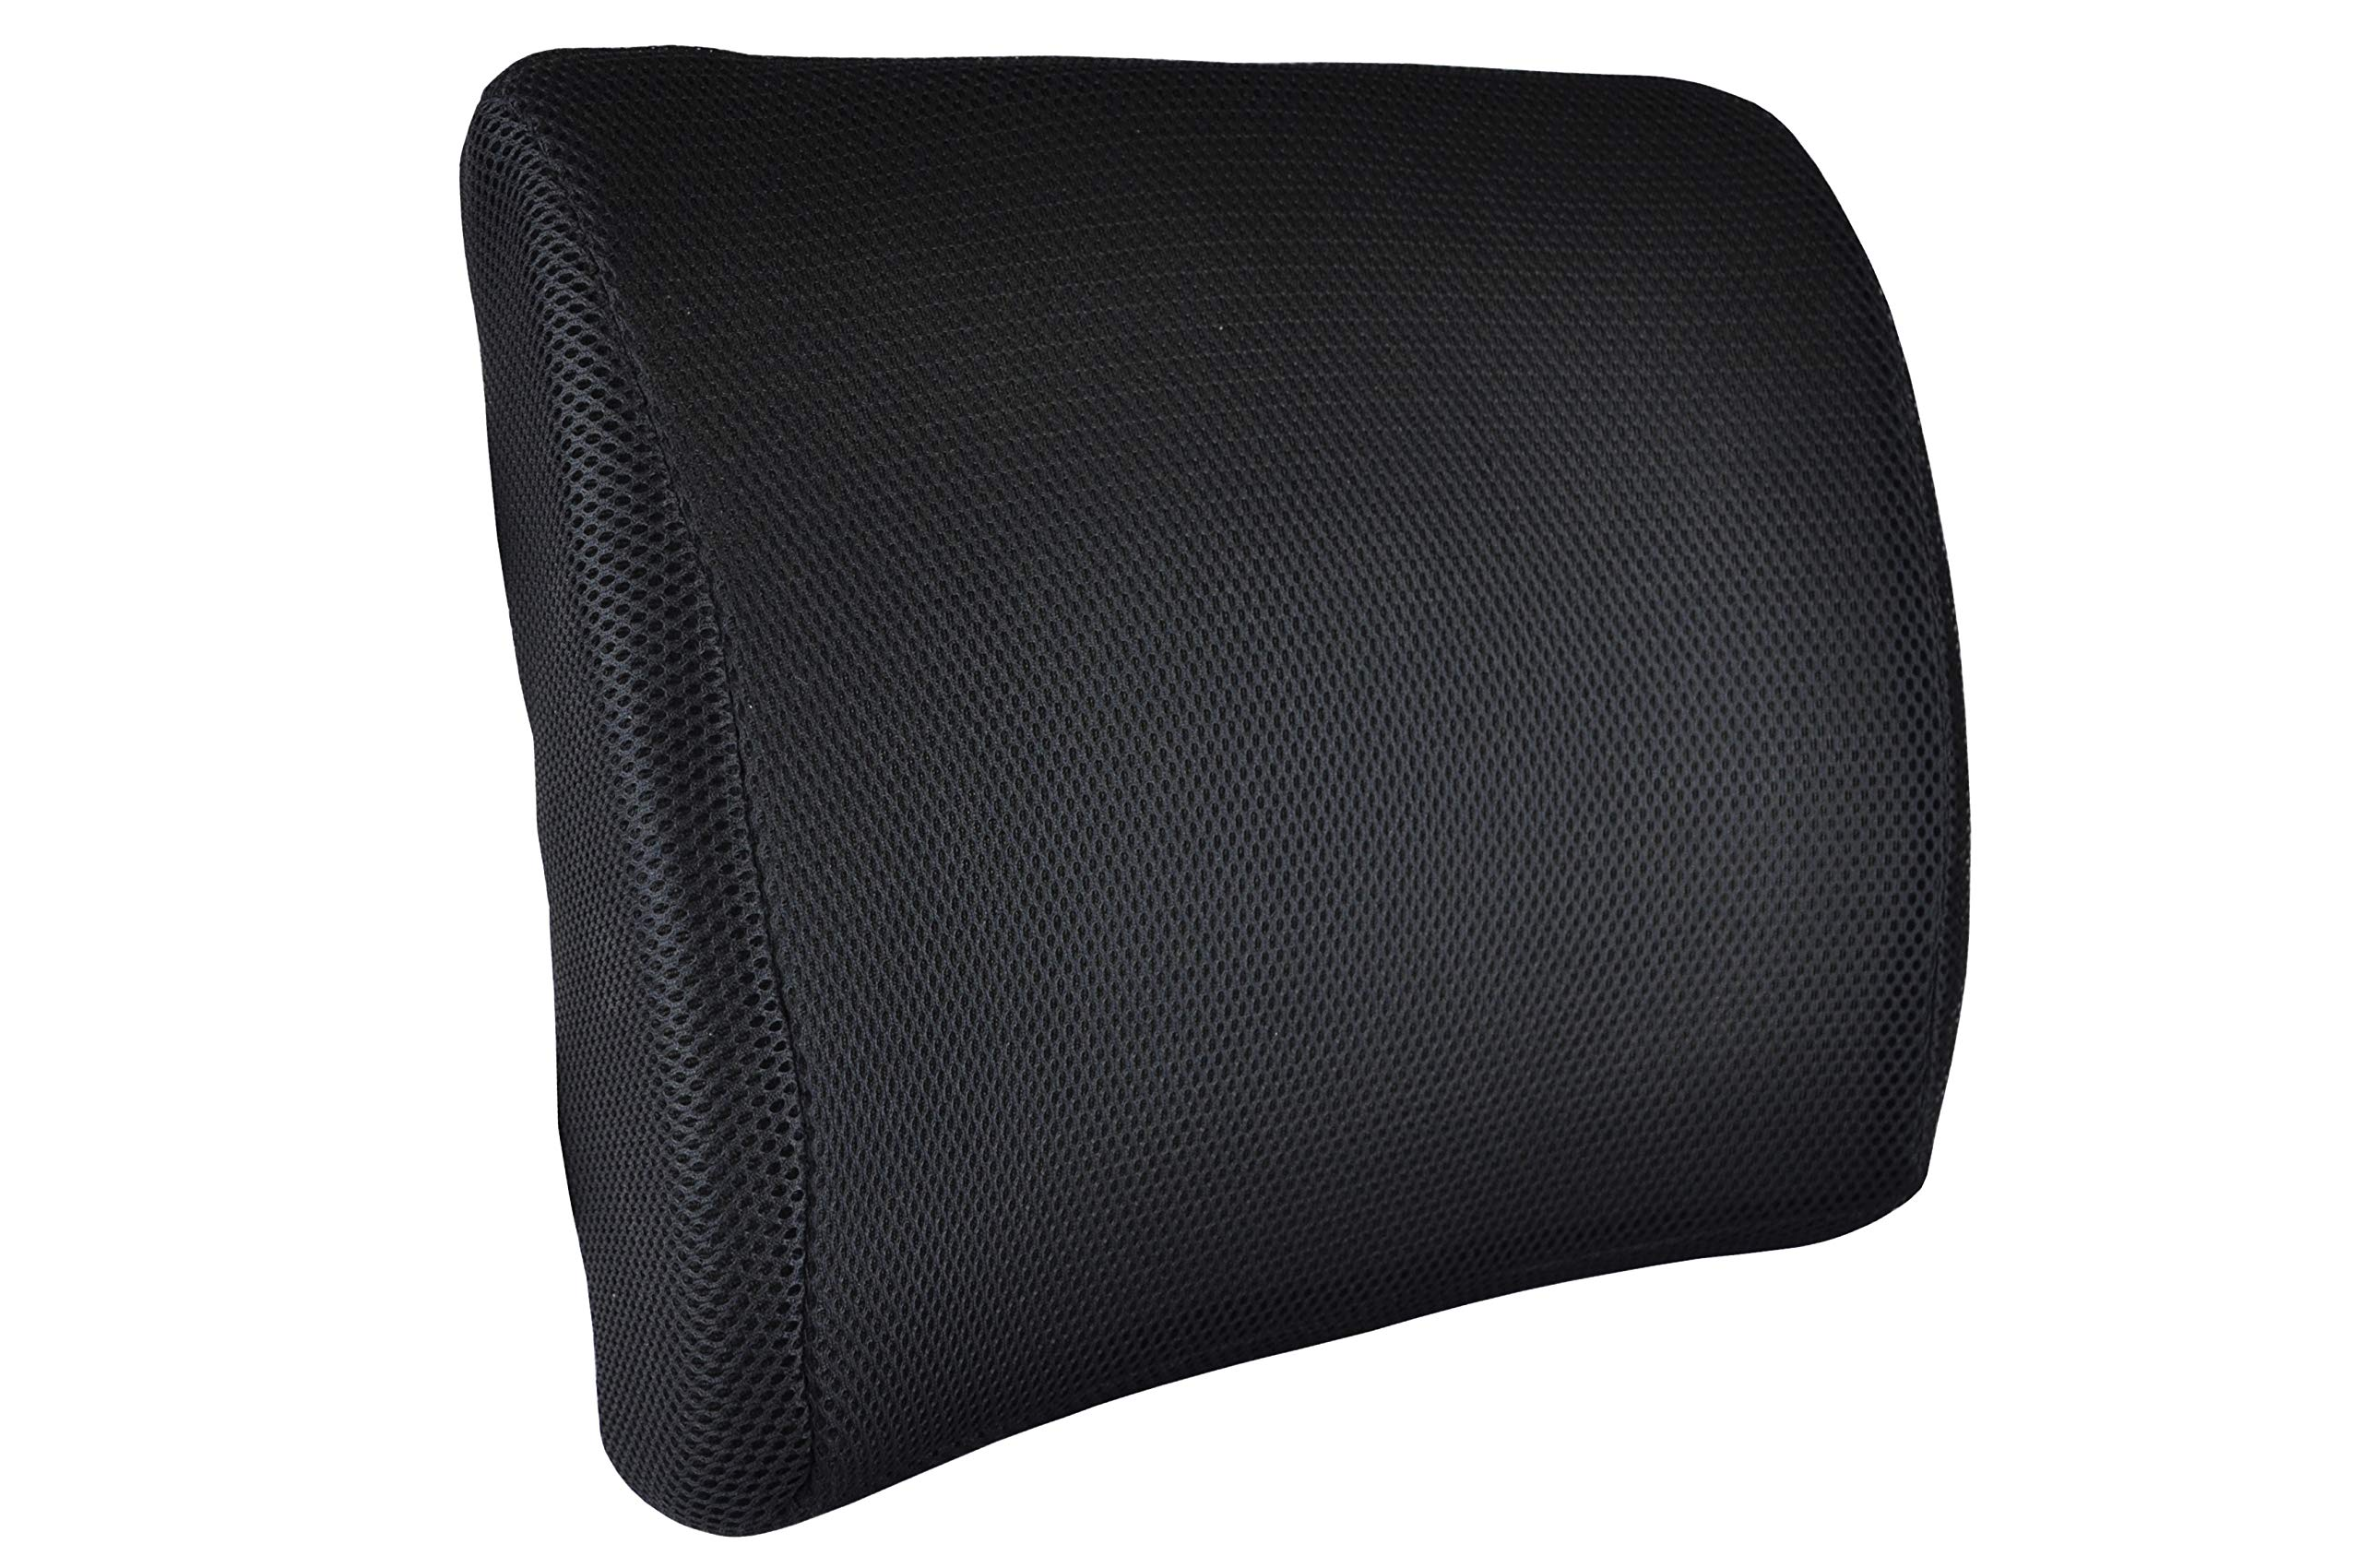 Blue Jay An Elite Healthcare Brand Comfort and Support Memory Foam Lumbar Cushion with Adjustable Straps for Relieves Back Pain and Maintains Posture | Breathable and Washable in Black Color